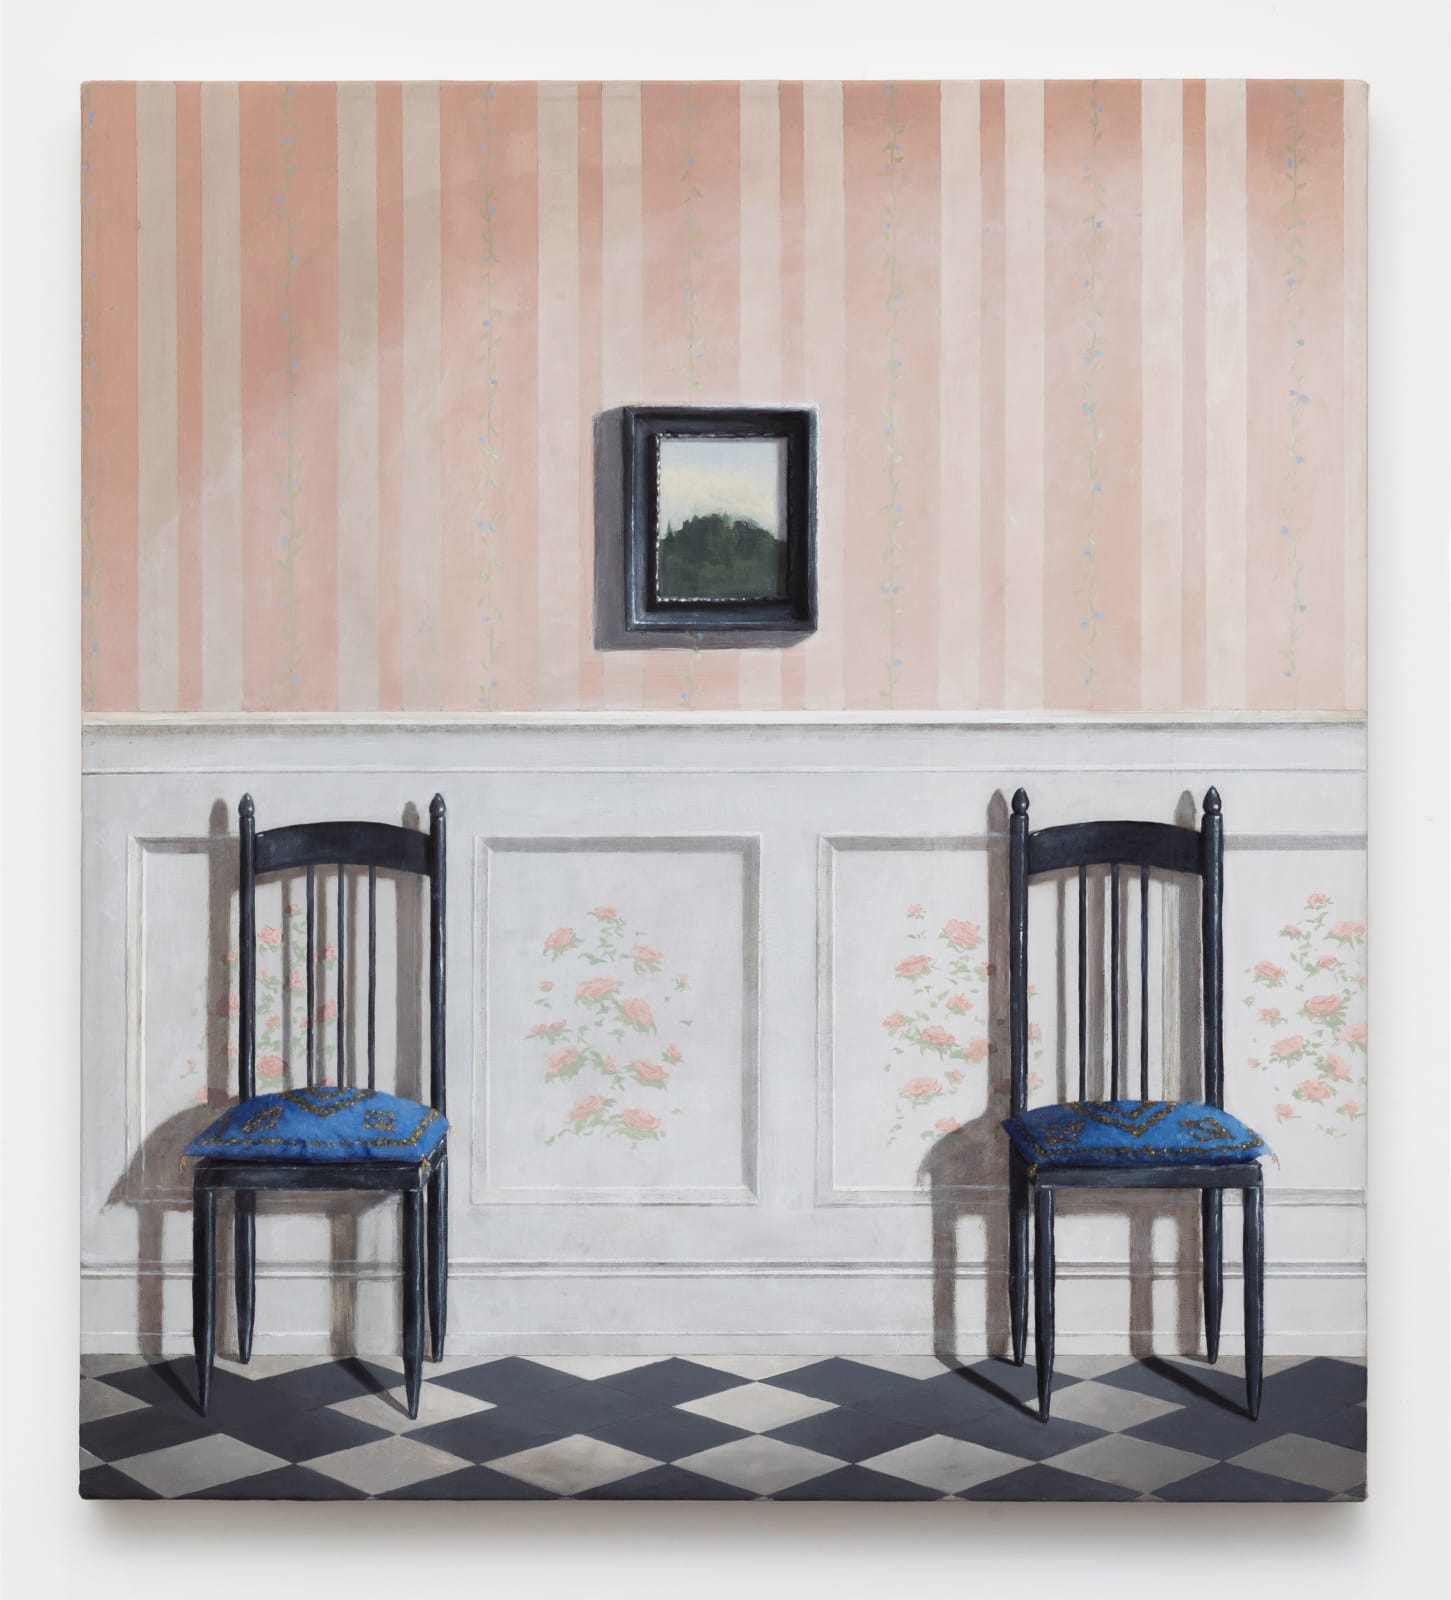 Quentin James McCaffrey, Two Chairs, 2020